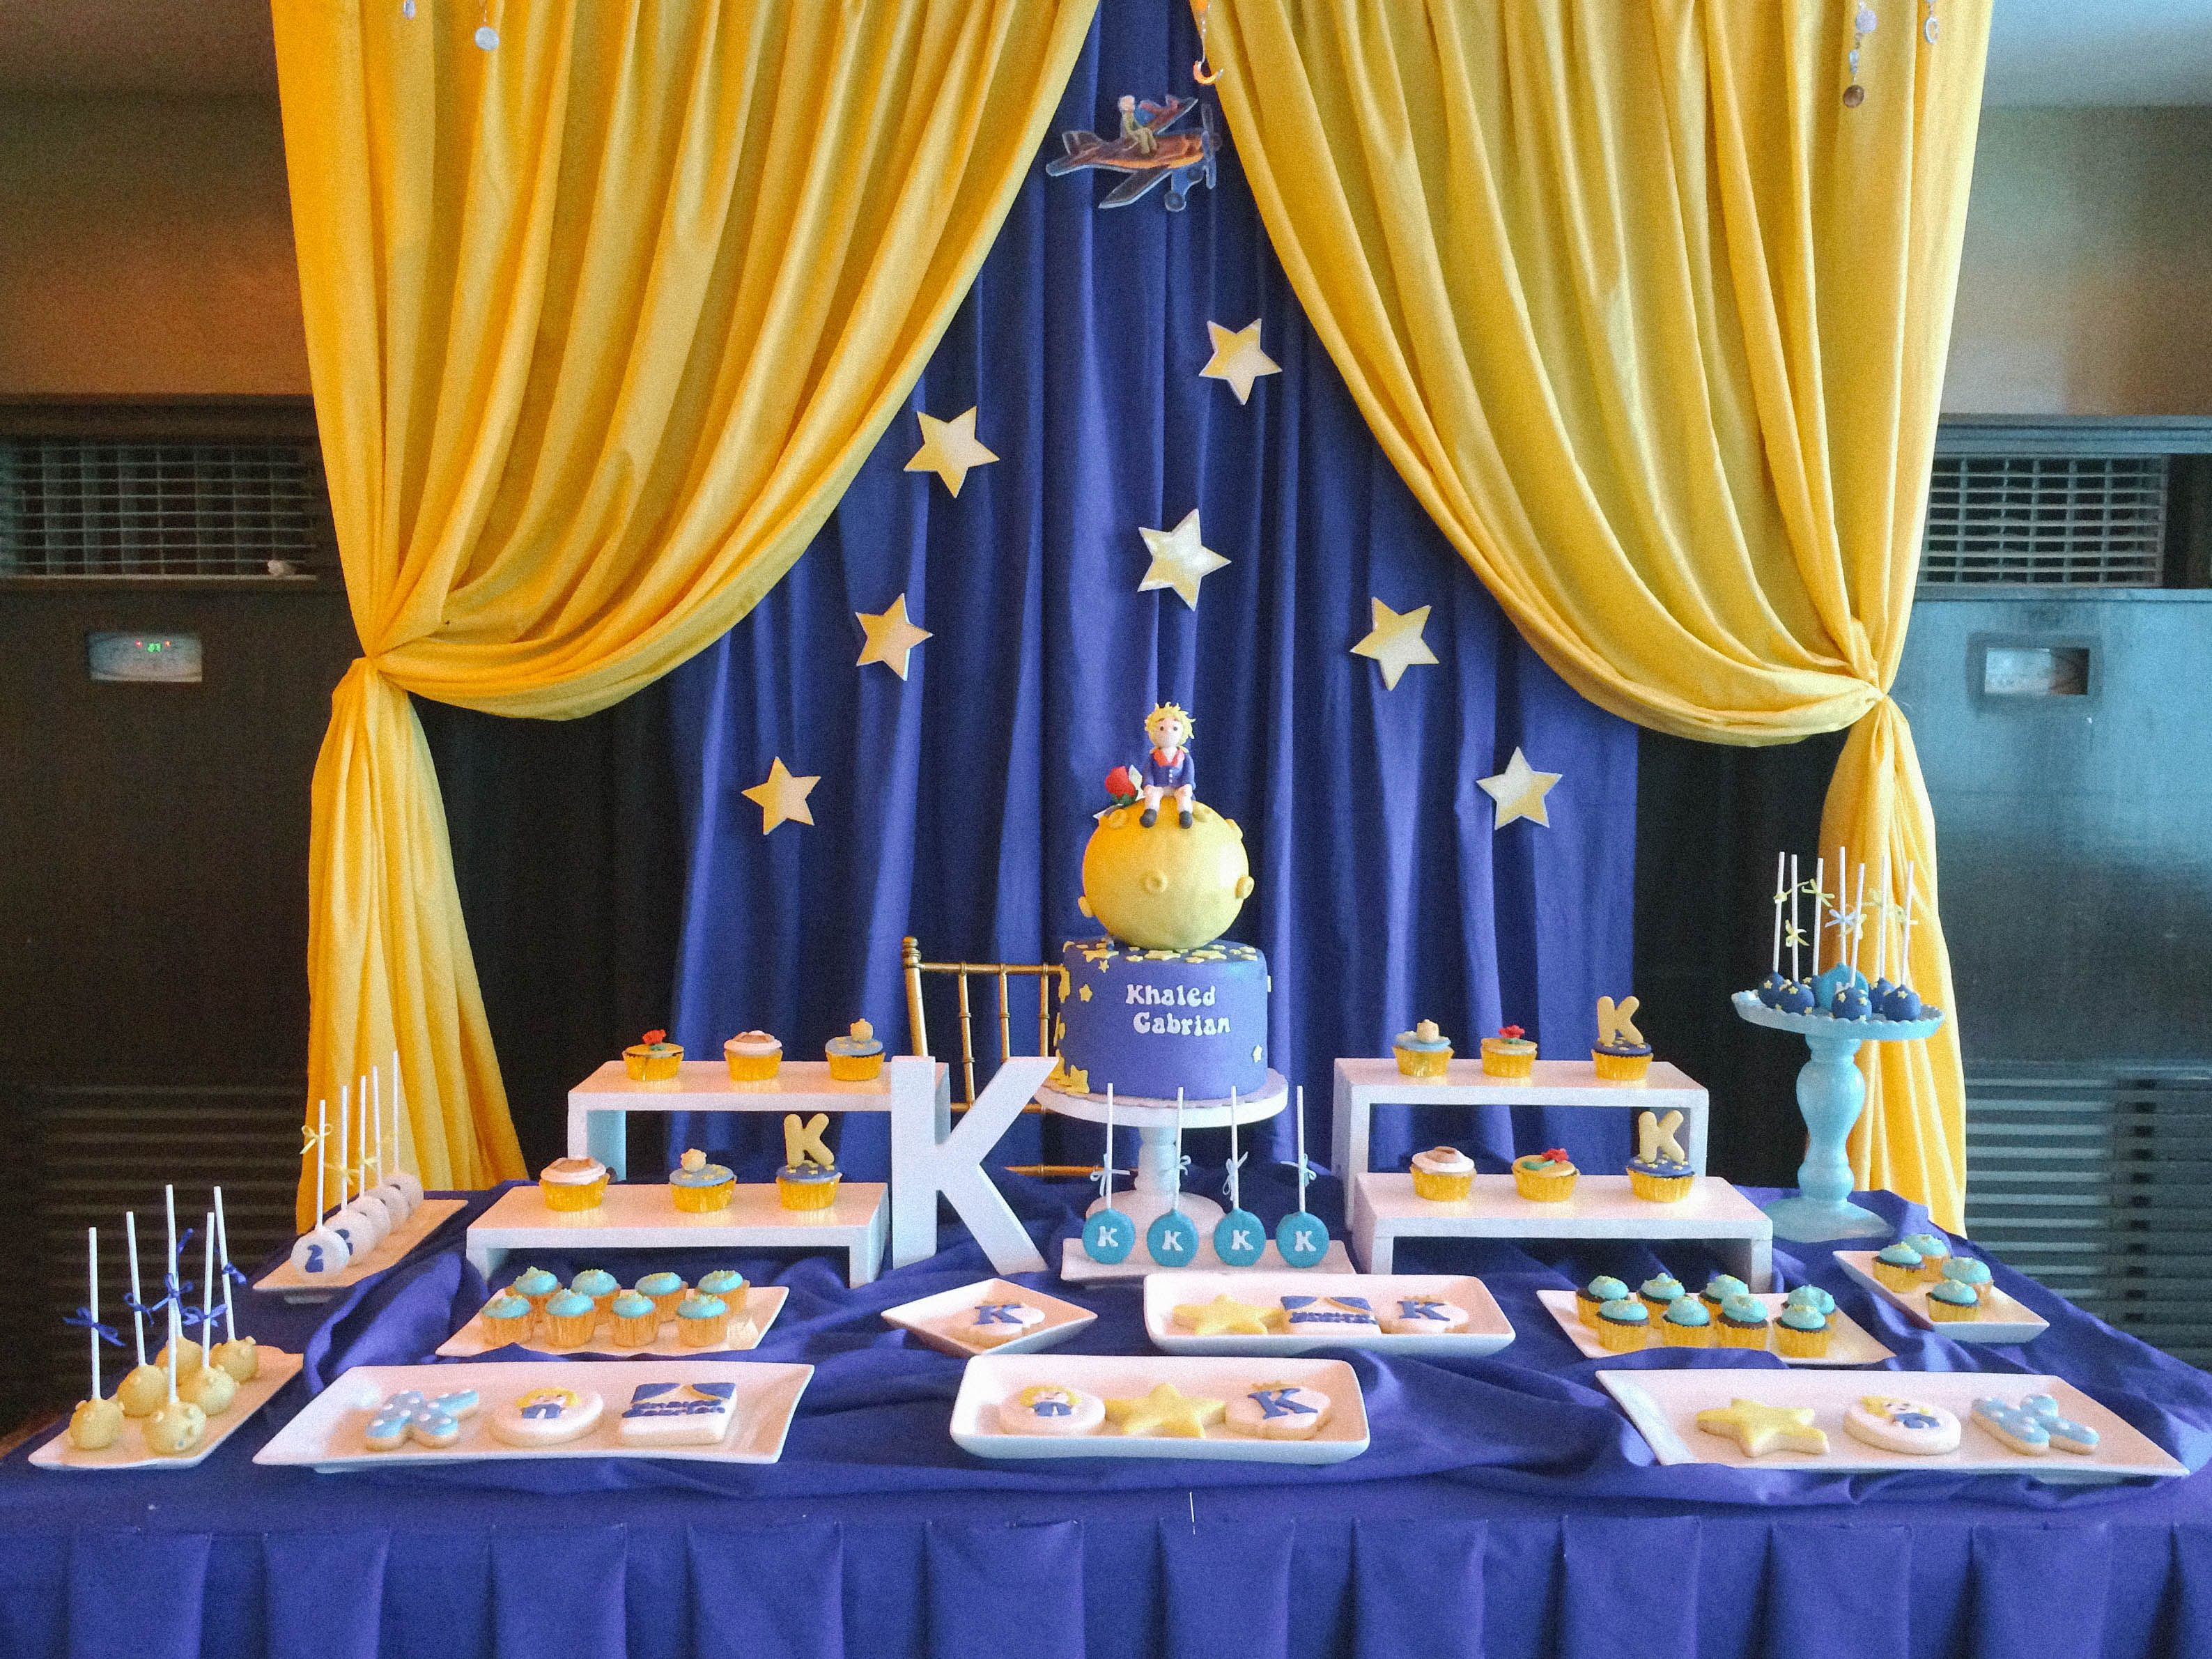 the little prince dessert table dessert table prince. Black Bedroom Furniture Sets. Home Design Ideas